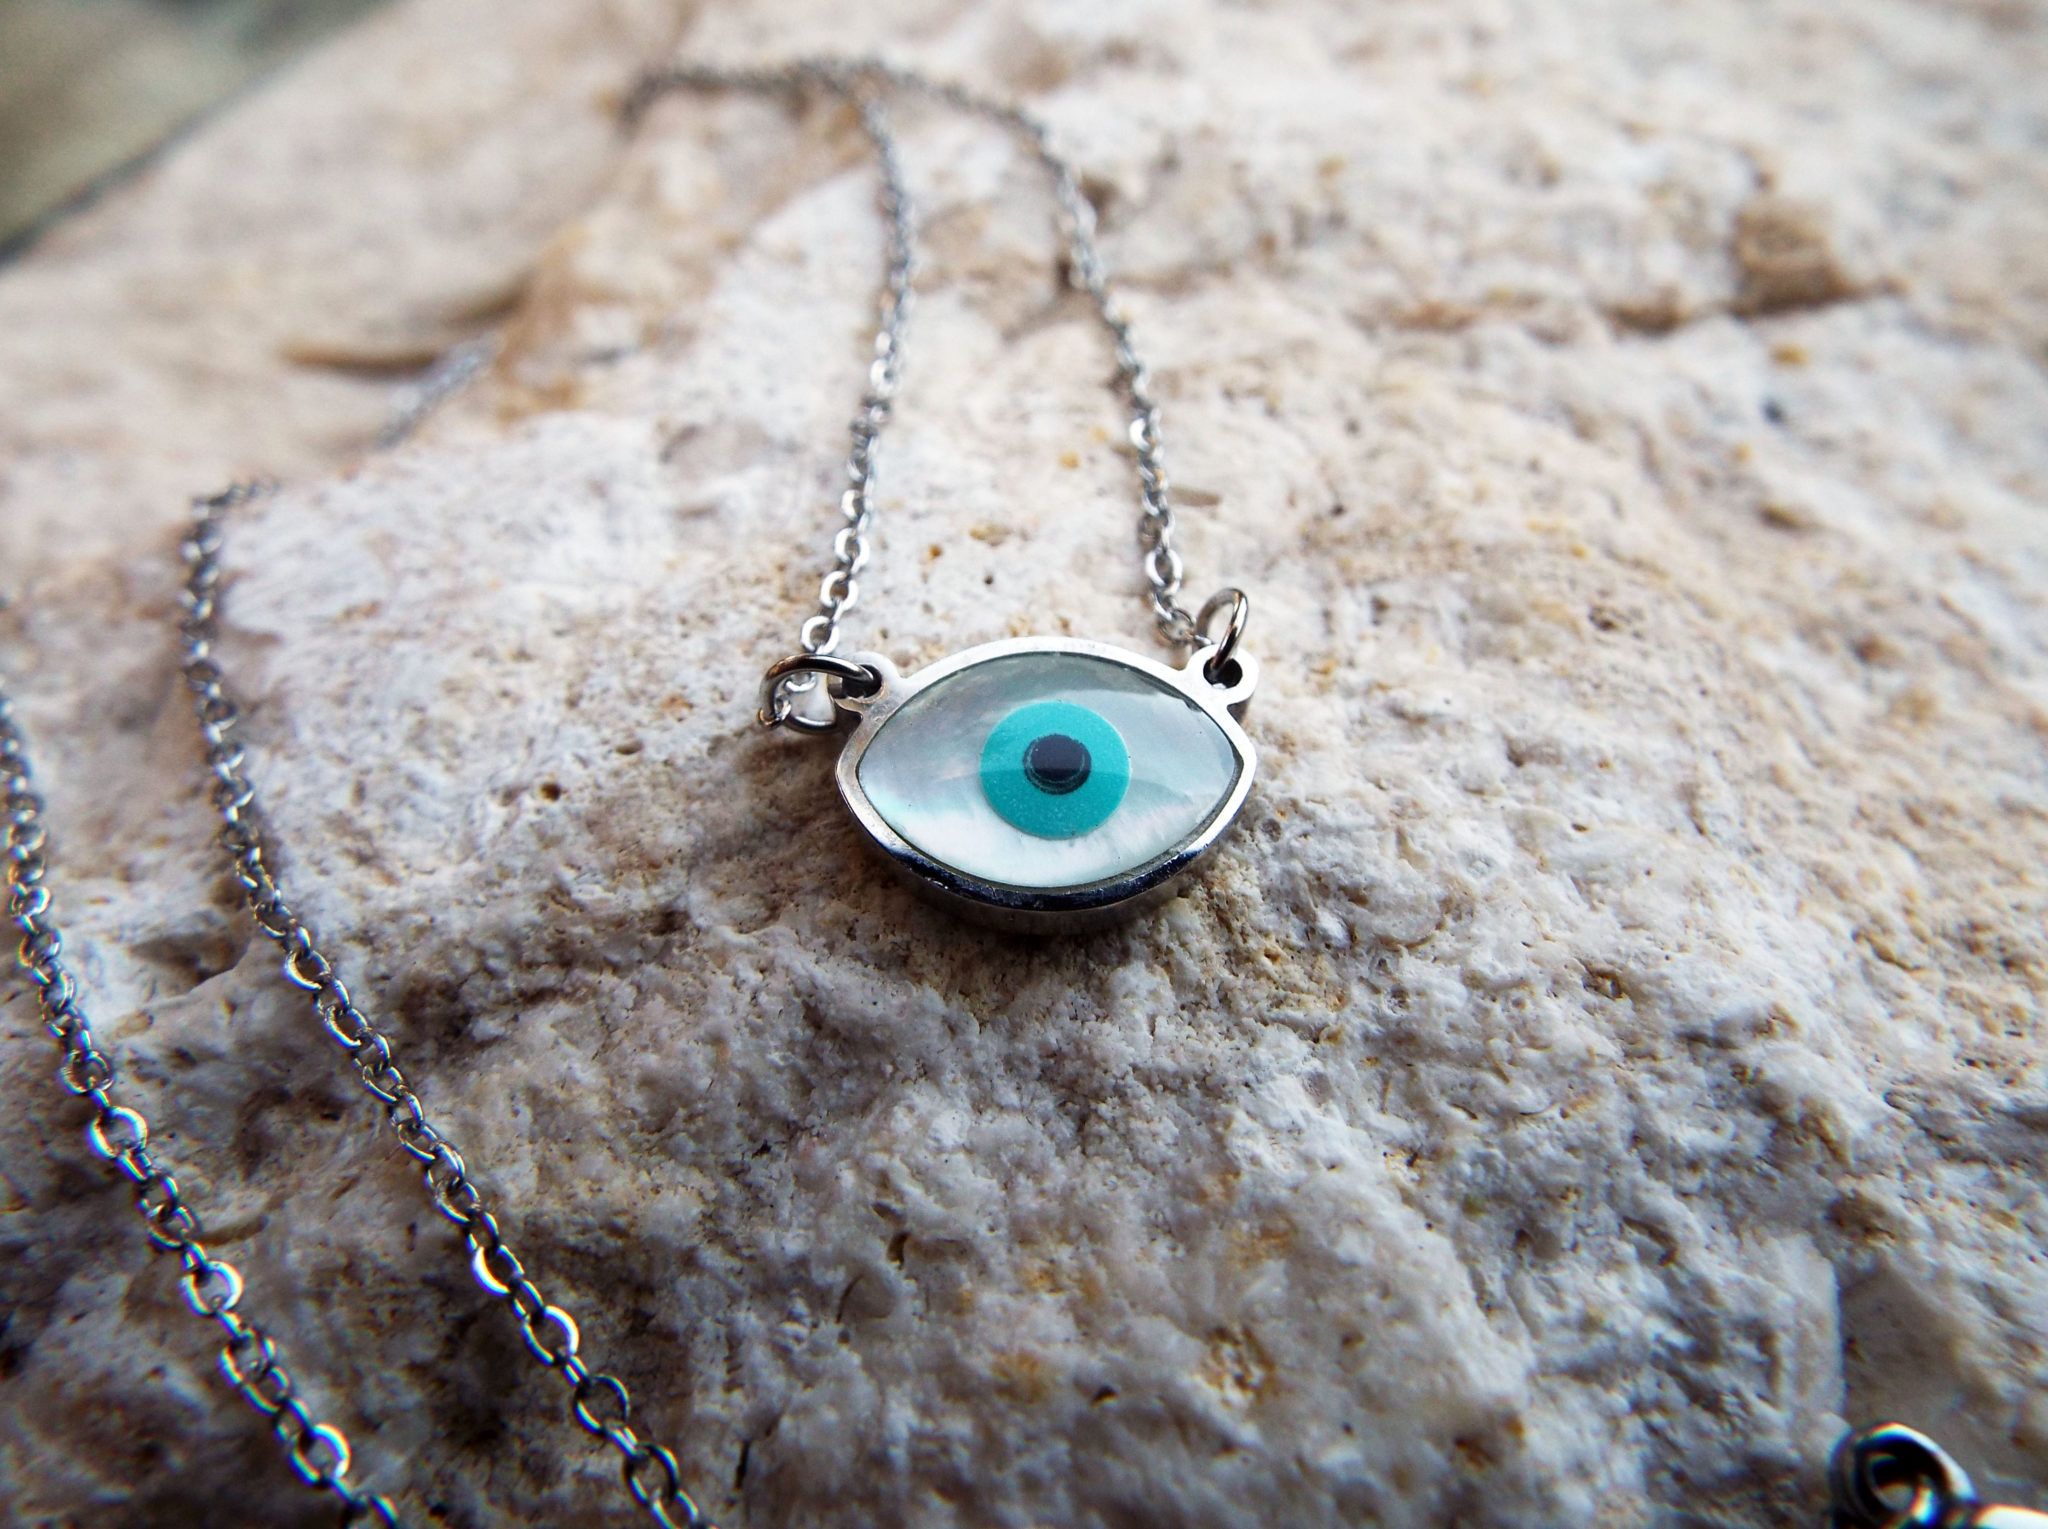 a sterling eye brand jewellery pendant schmuck silver family heart ensoie pendants shop mini